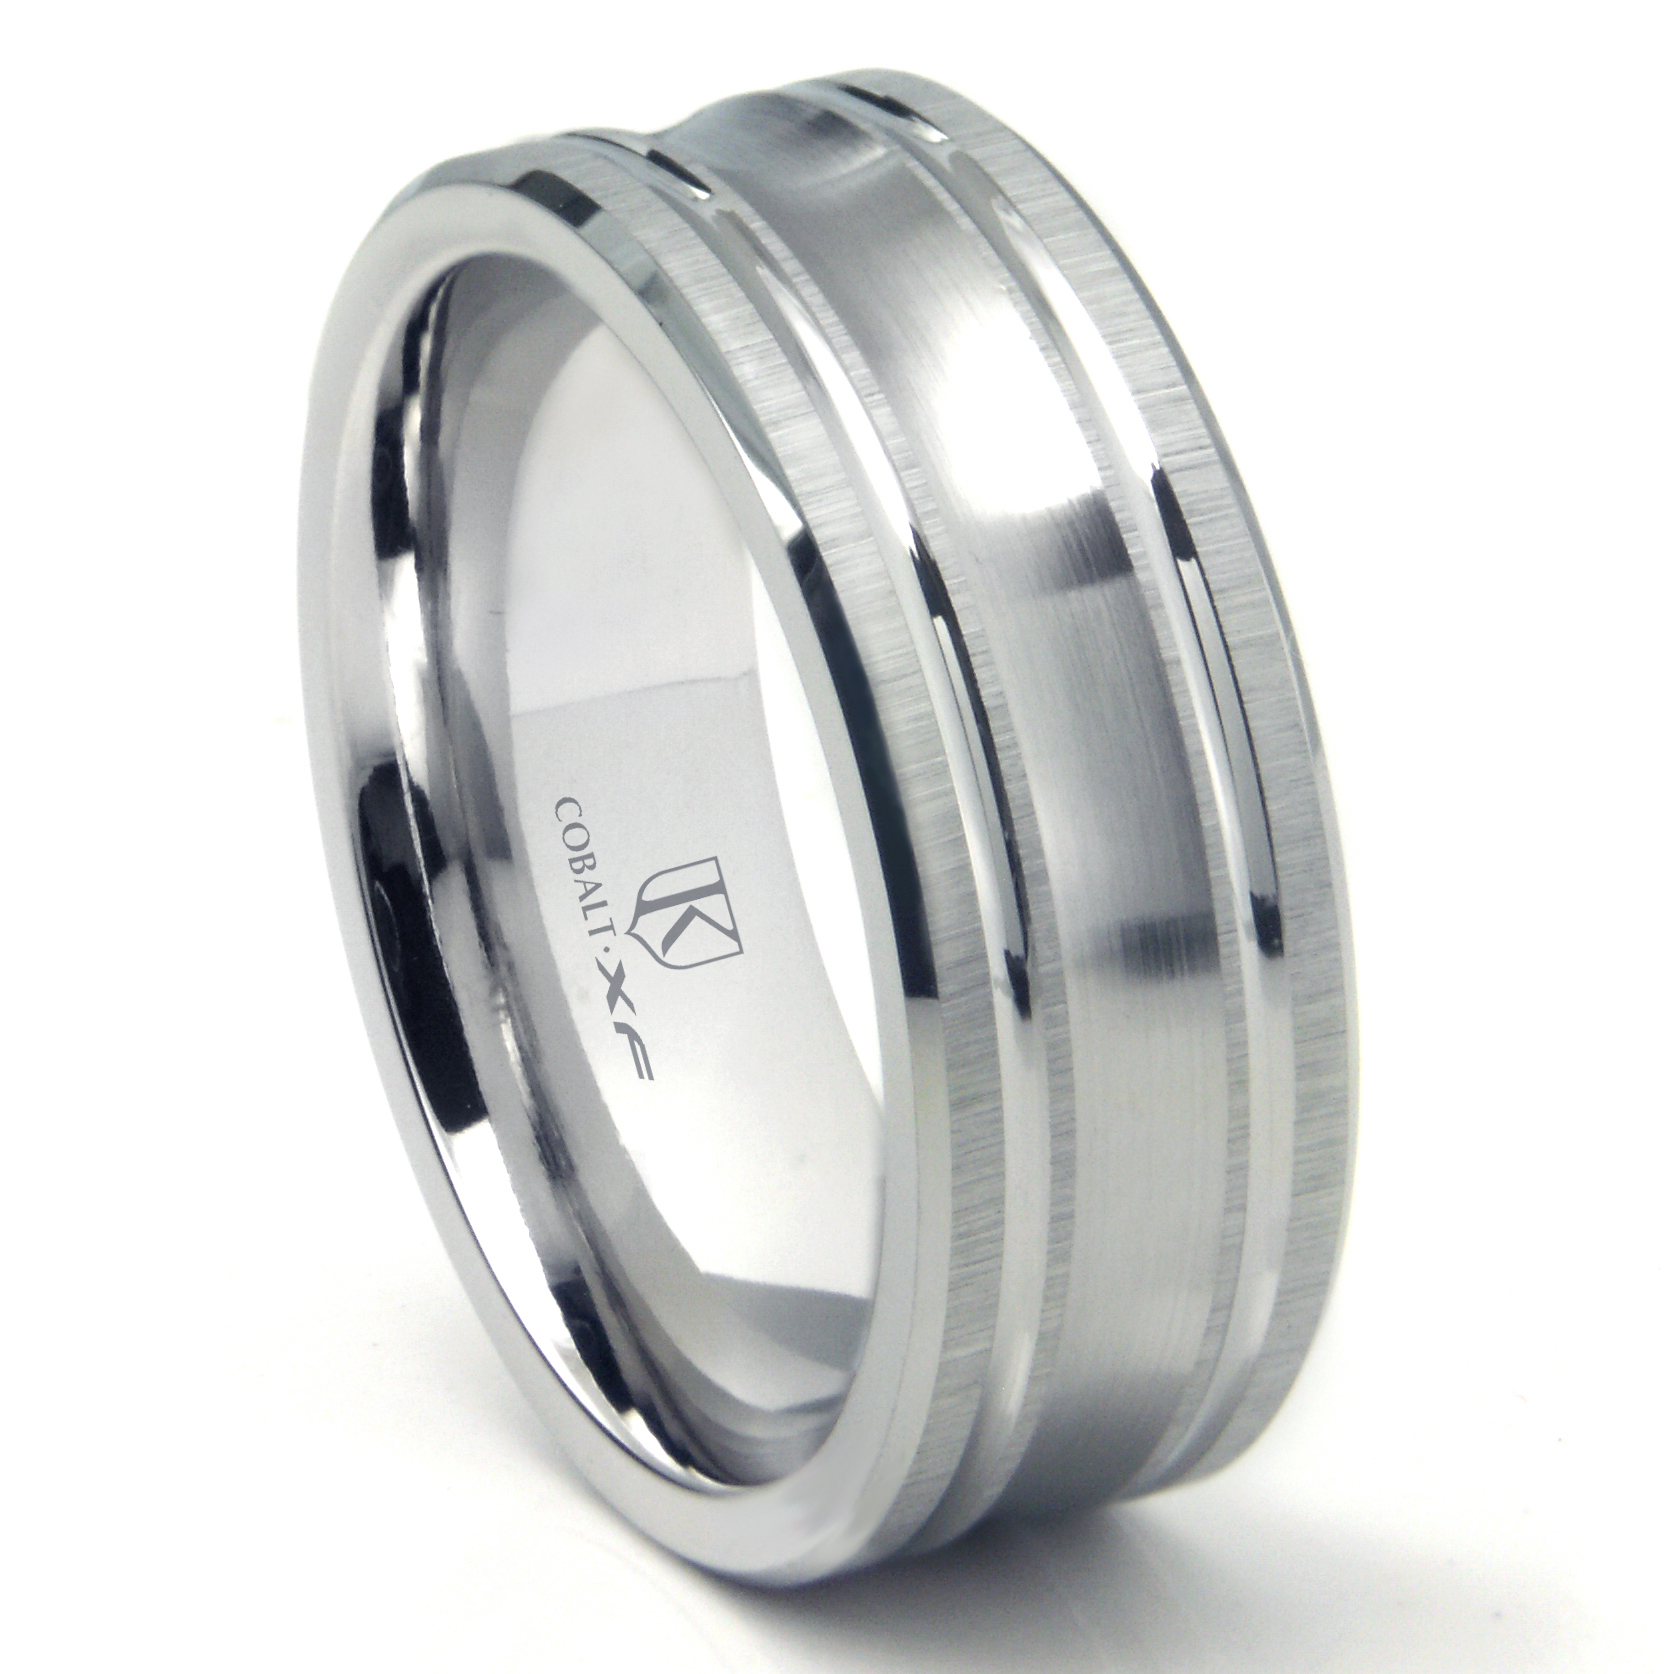 ring her cheap articles rings wedding easy him luxury best reasonable and of grooms for weddings affordable sets women